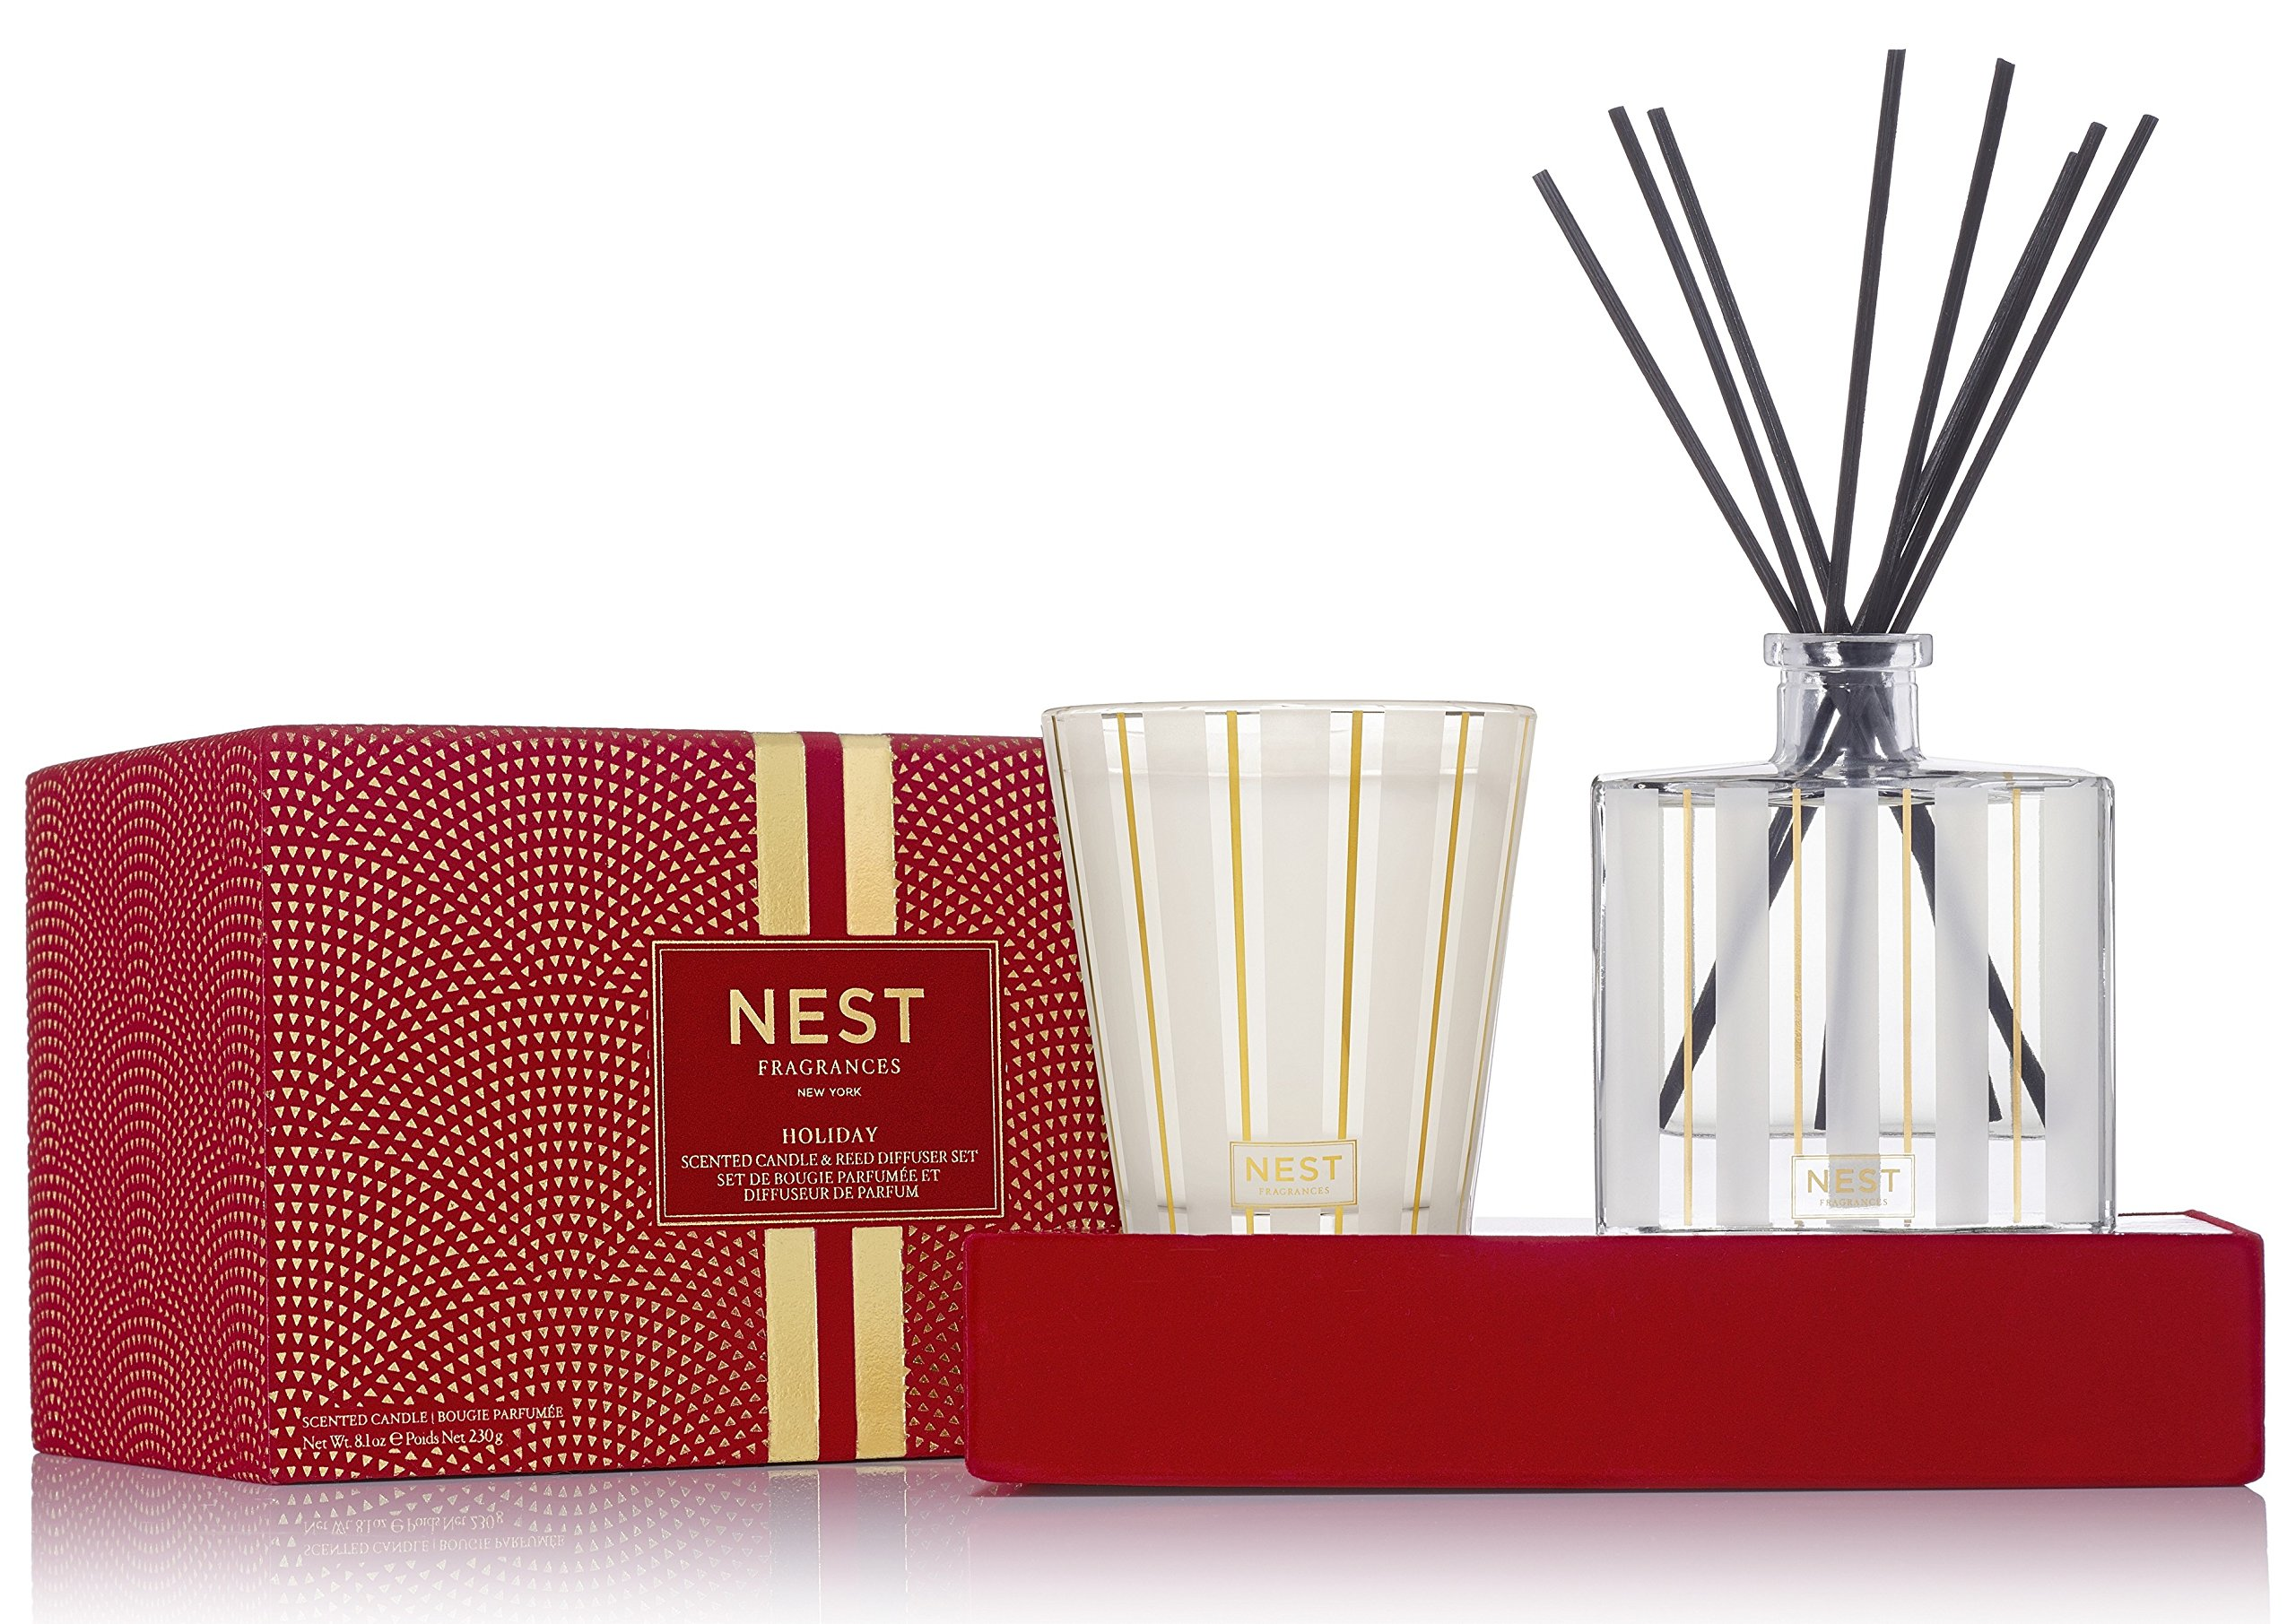 NEST Fragrances Classic Candle & Reed Diffuser Set- Holiday by NEST Fragrances